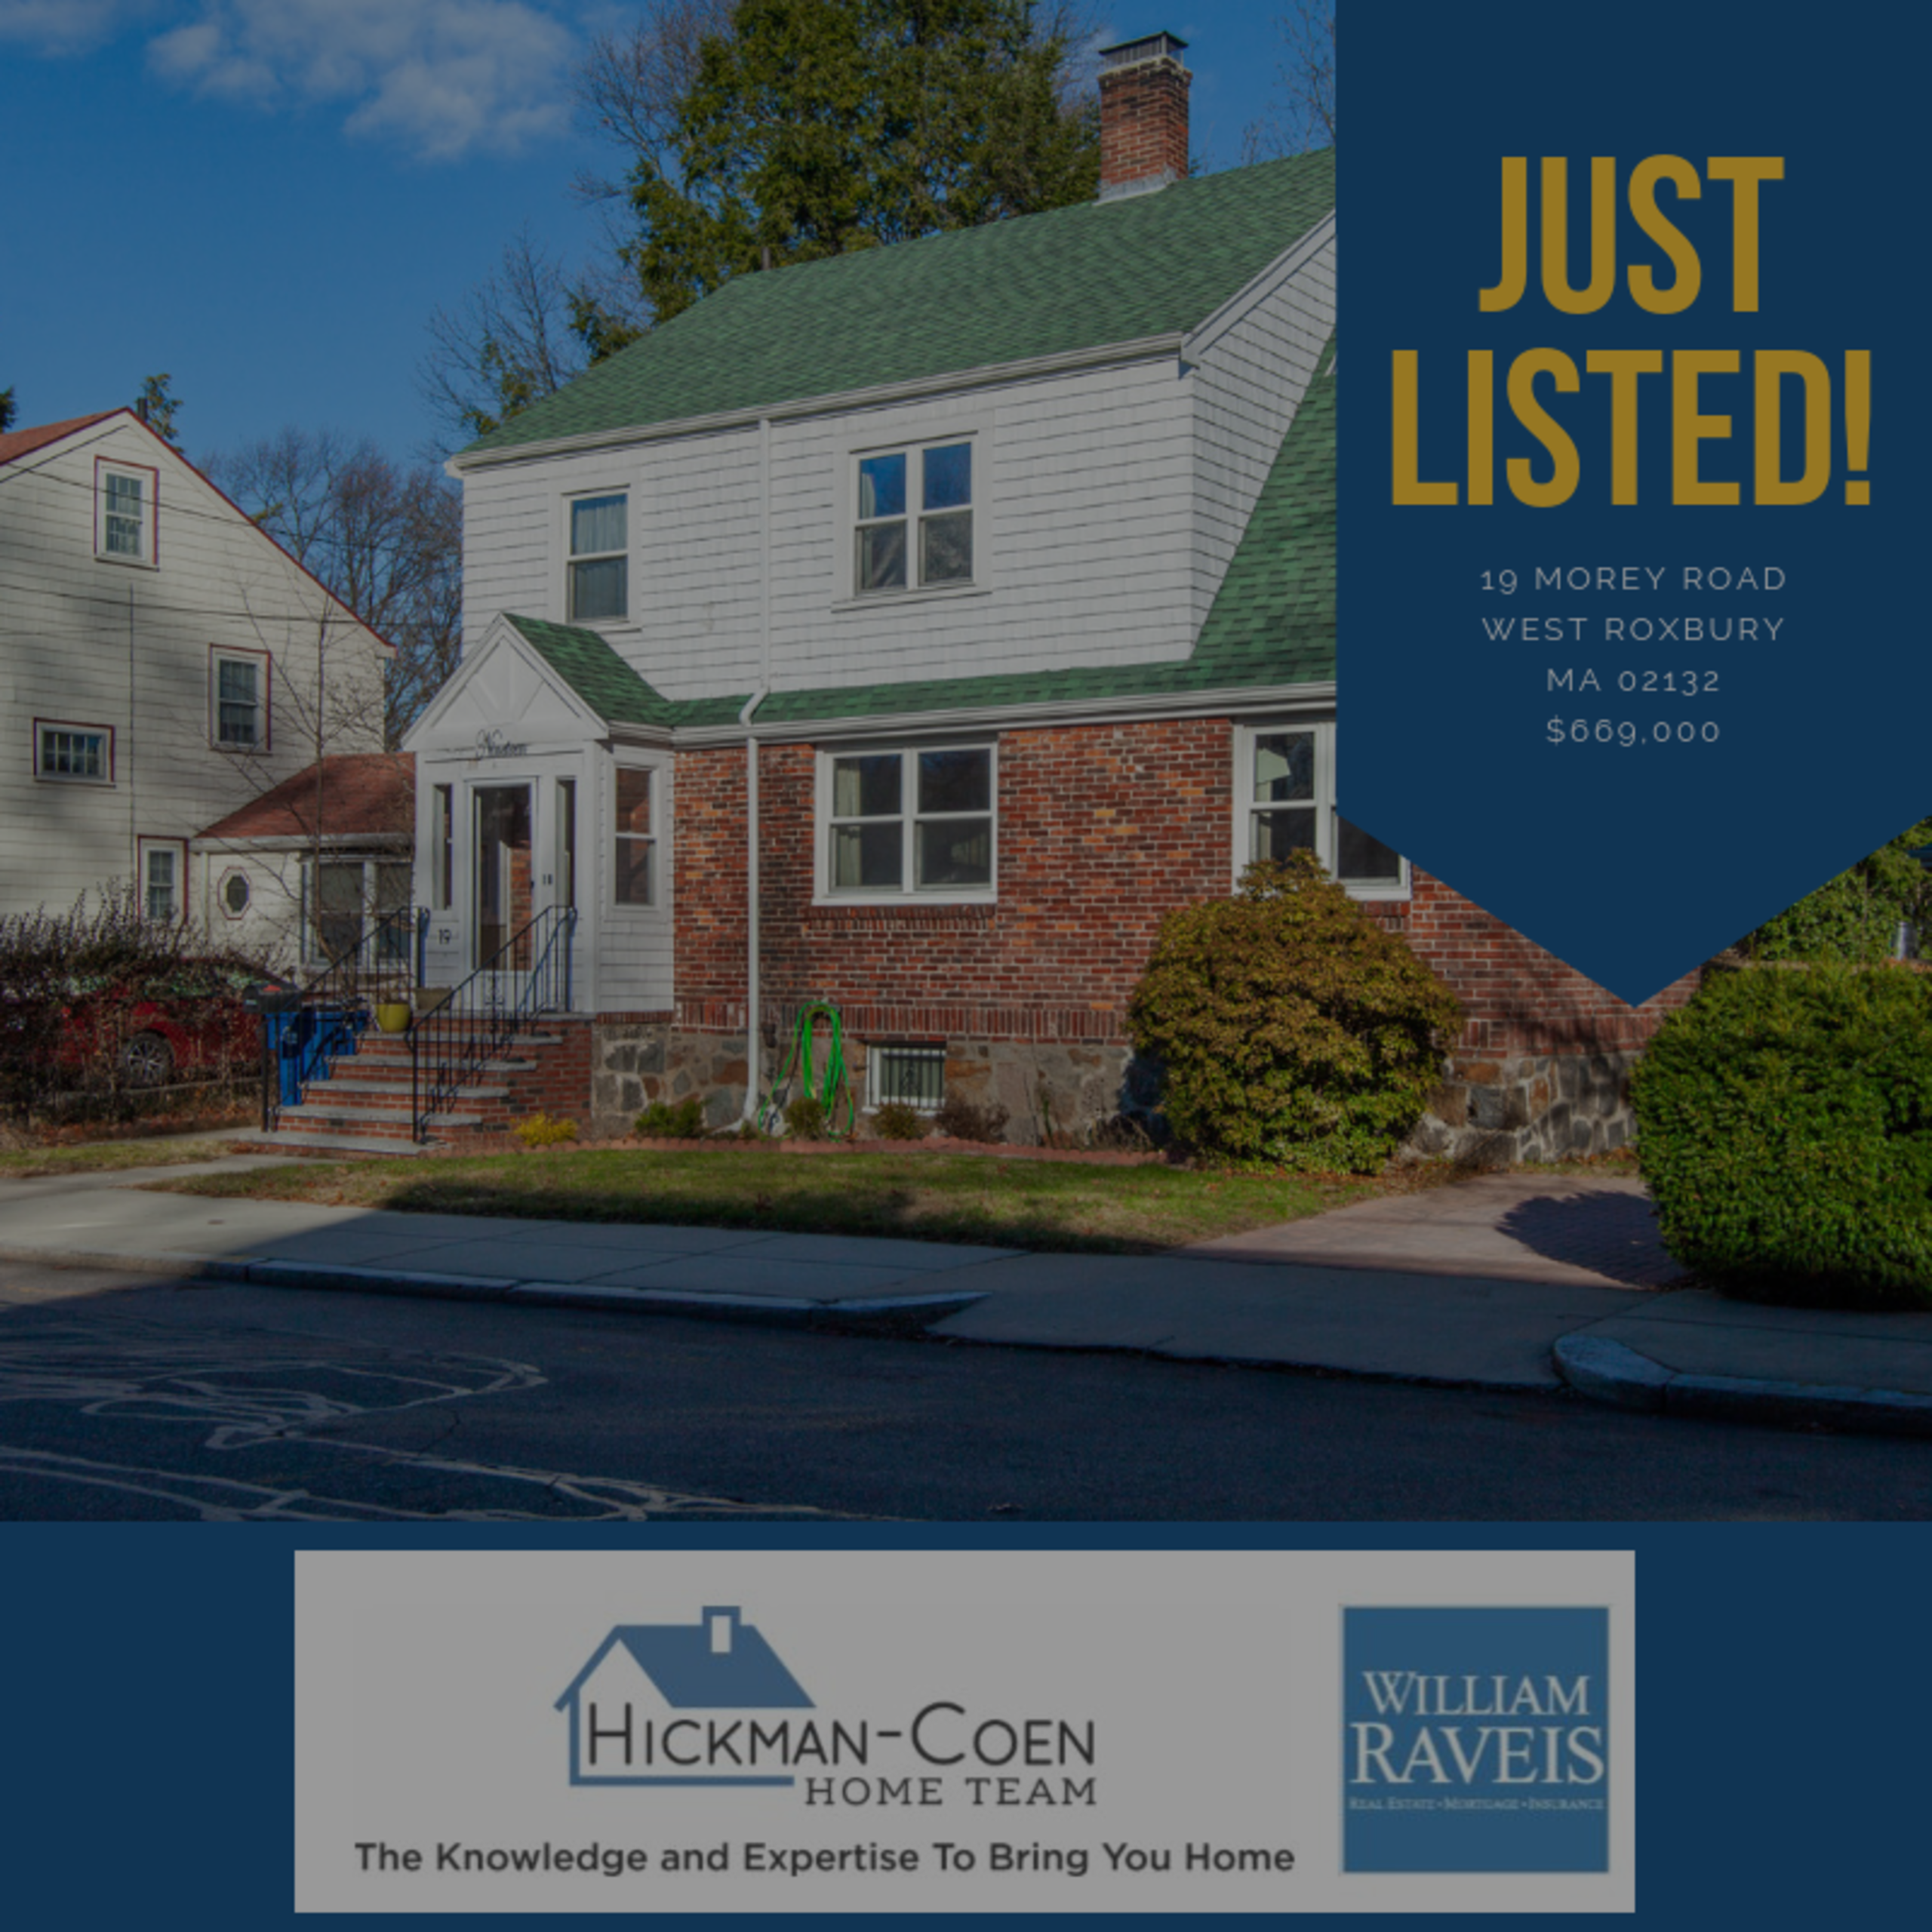 Just Listed 19 Morey Road, West Roxbury – Video Tour!